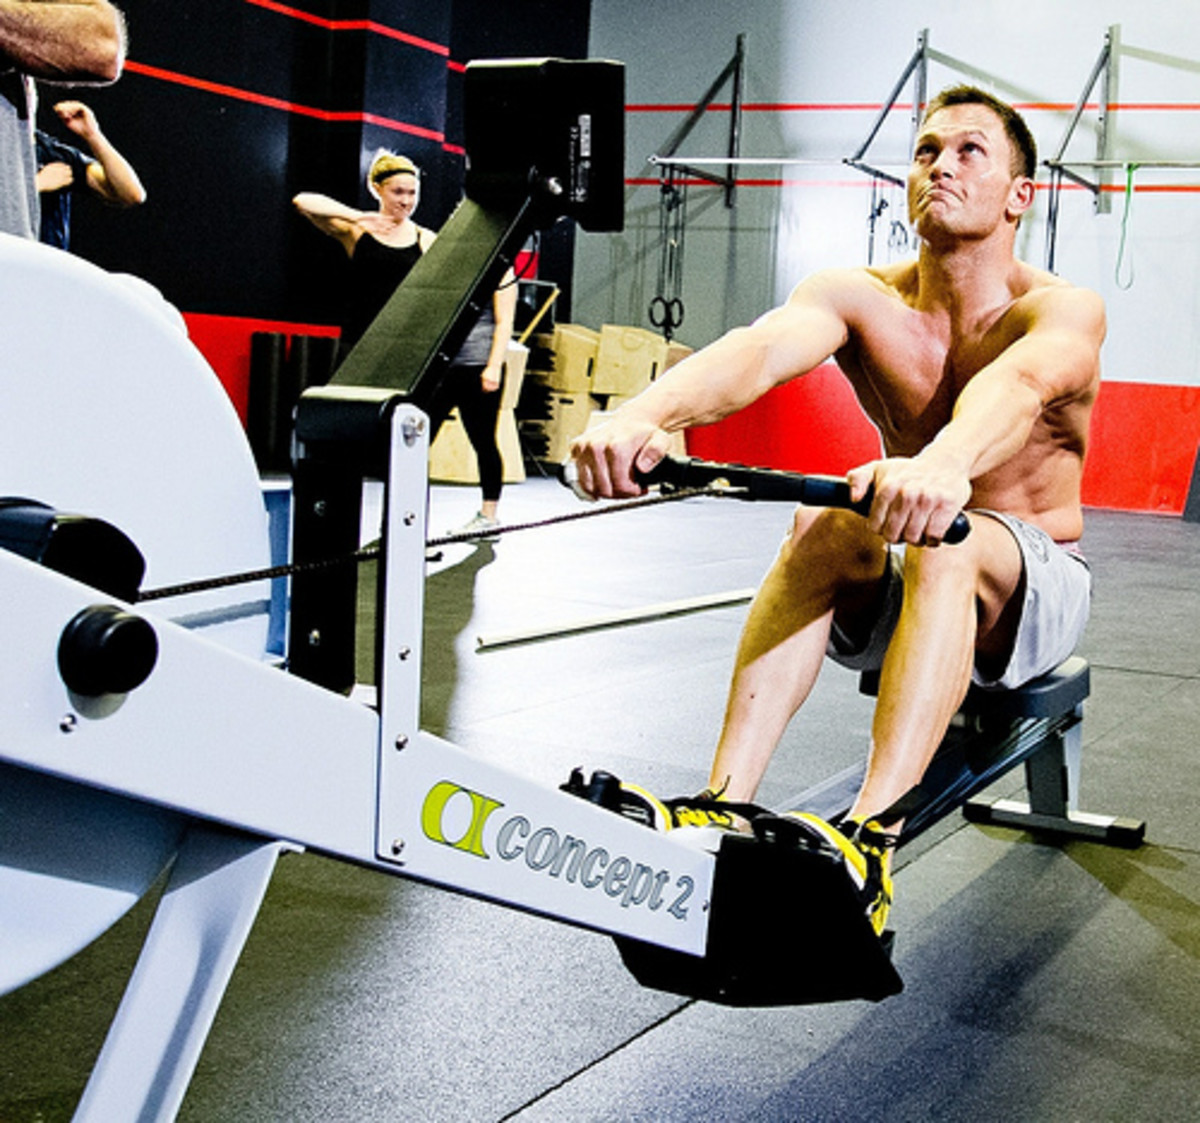 Rowing machines have many workout benefits